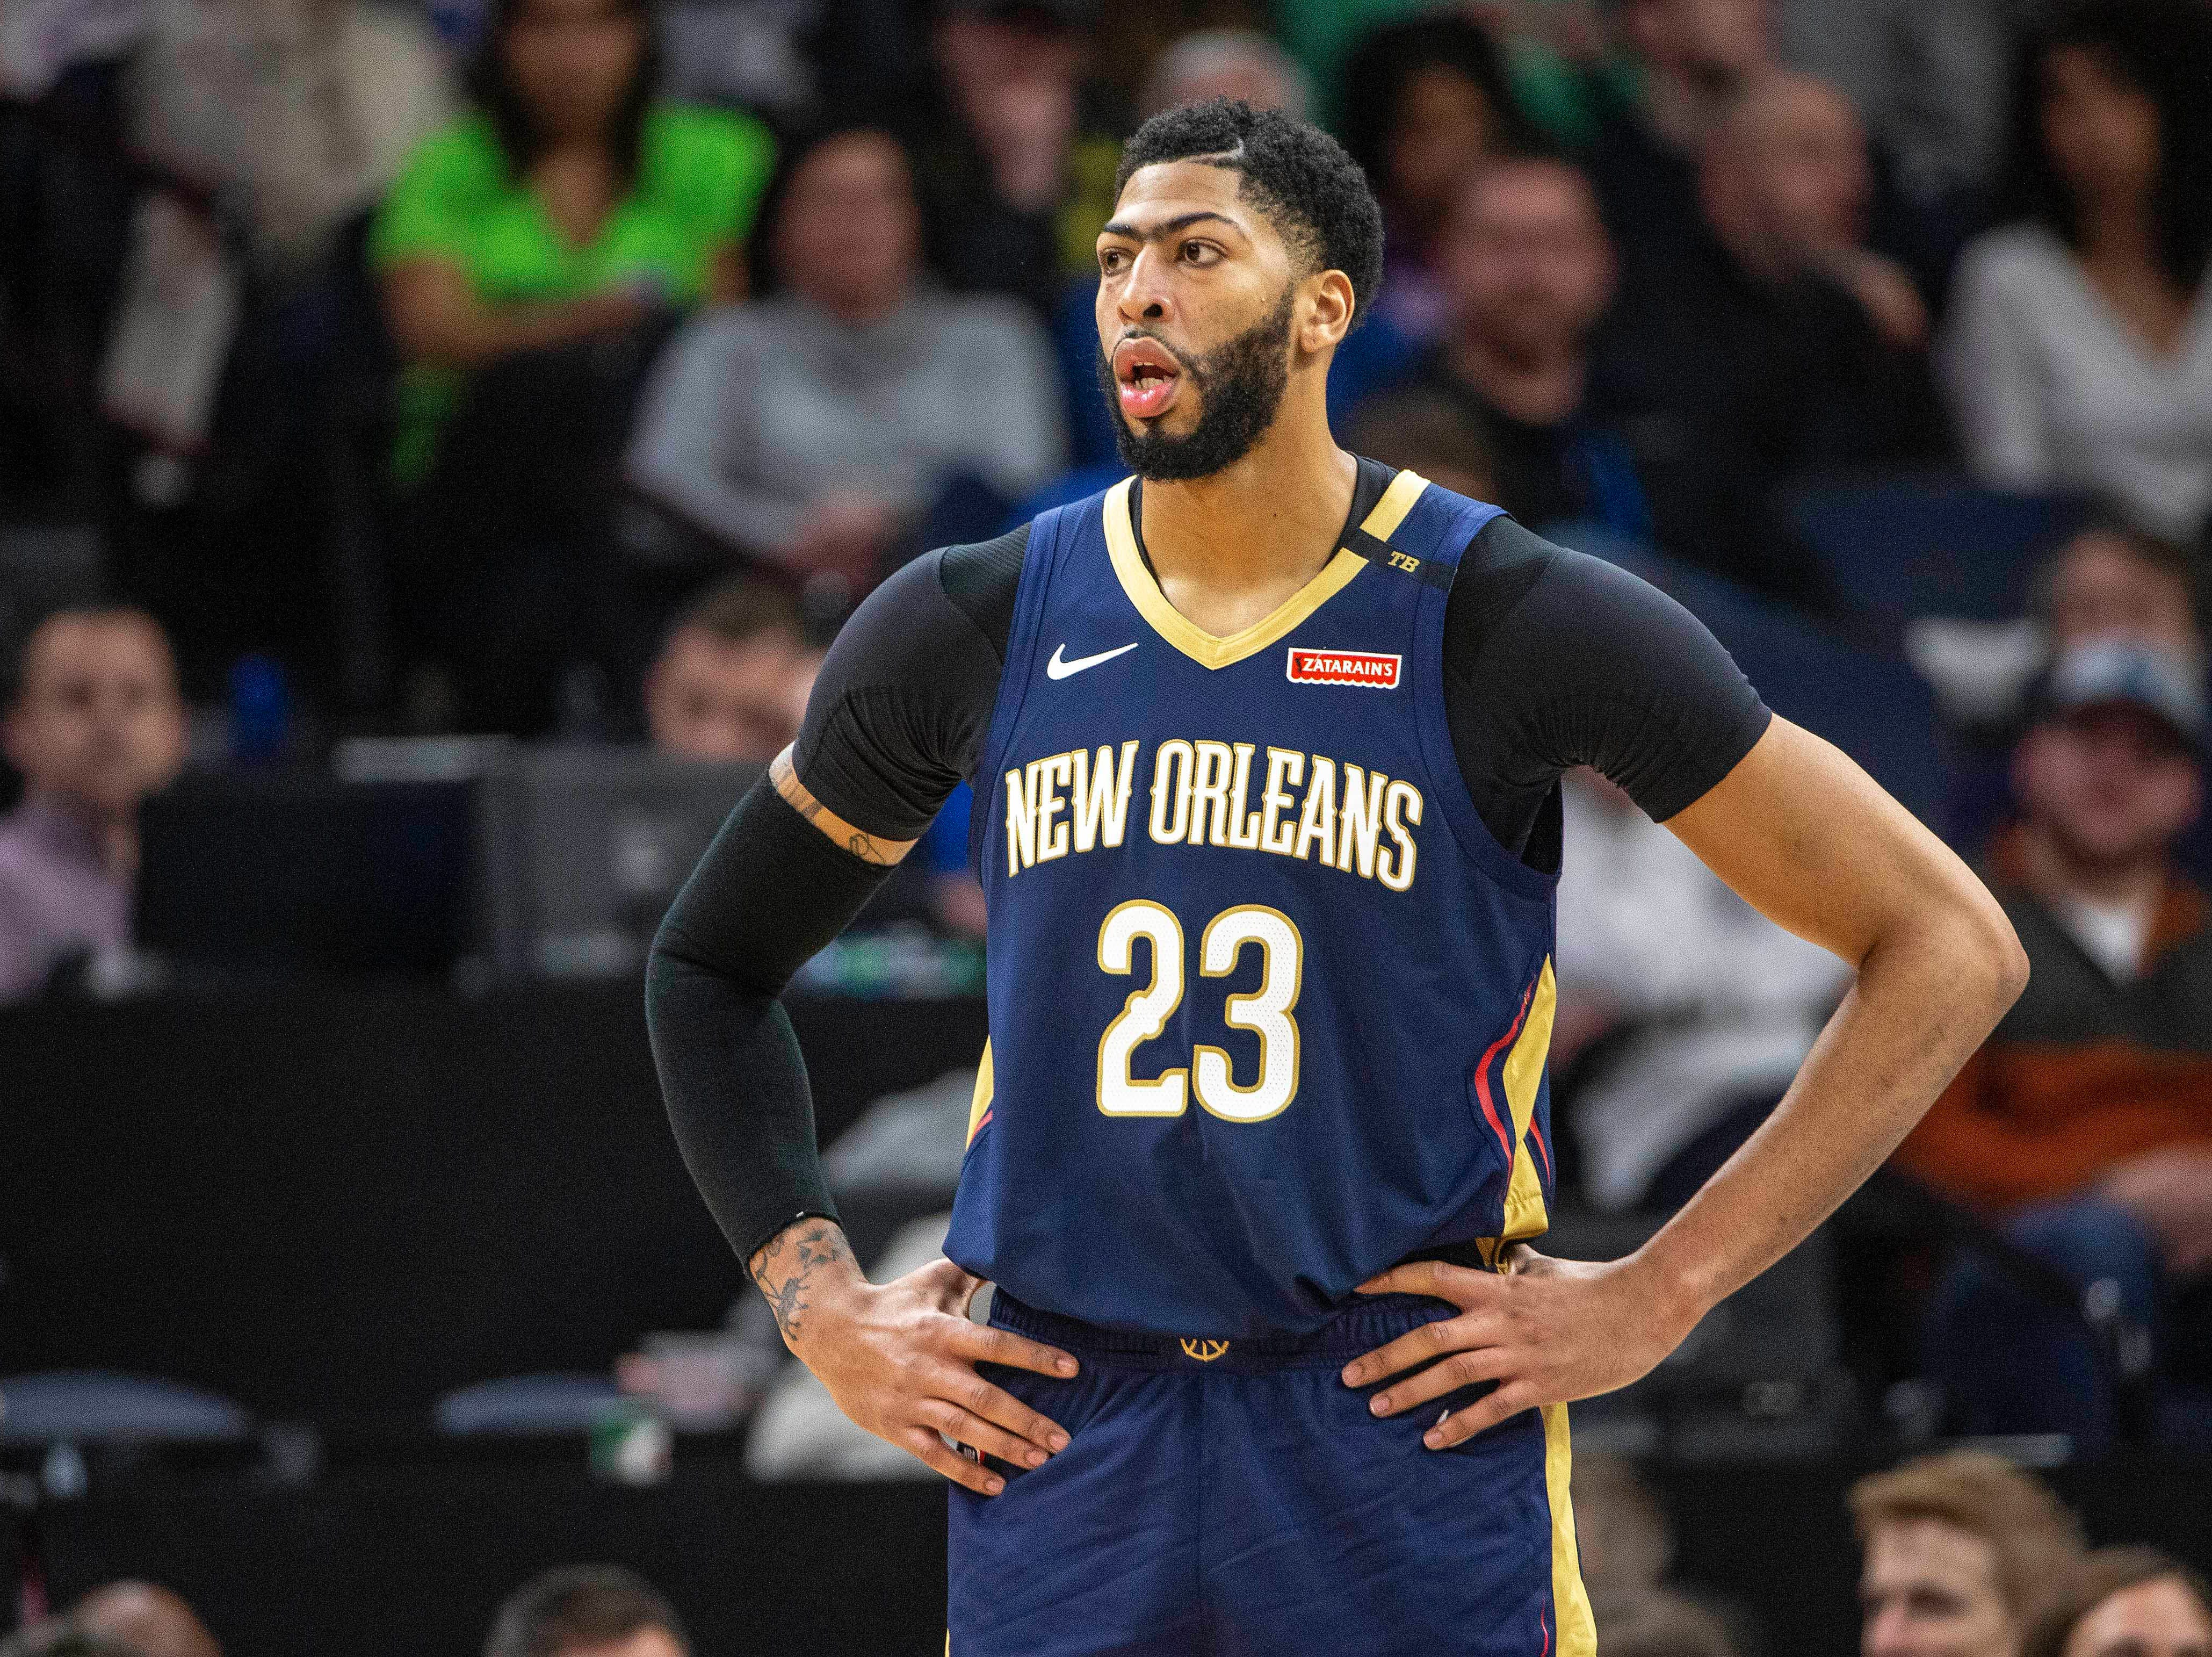 Opinion: Can Pelicans survive in New Orleans without Anthony Davis?